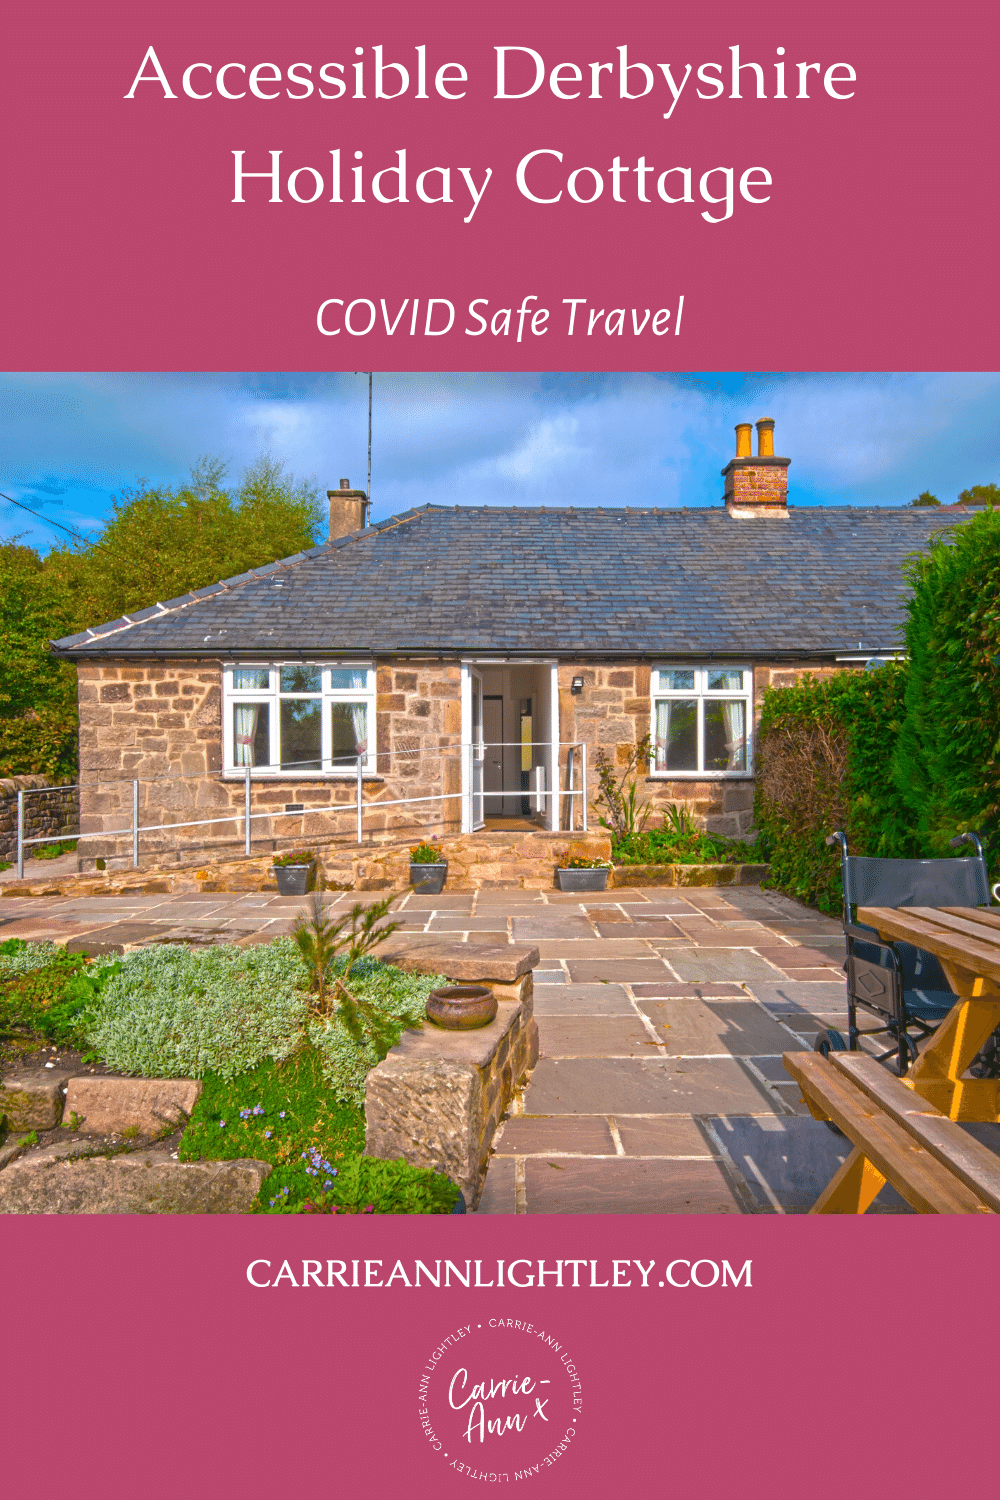 Top of image reads - Accessible Derbyshire Holiday Cottage COVID Safe Travel. Middle of image shows the outside of Croft Bungalow. Bottom of image has this blog's website address and logo